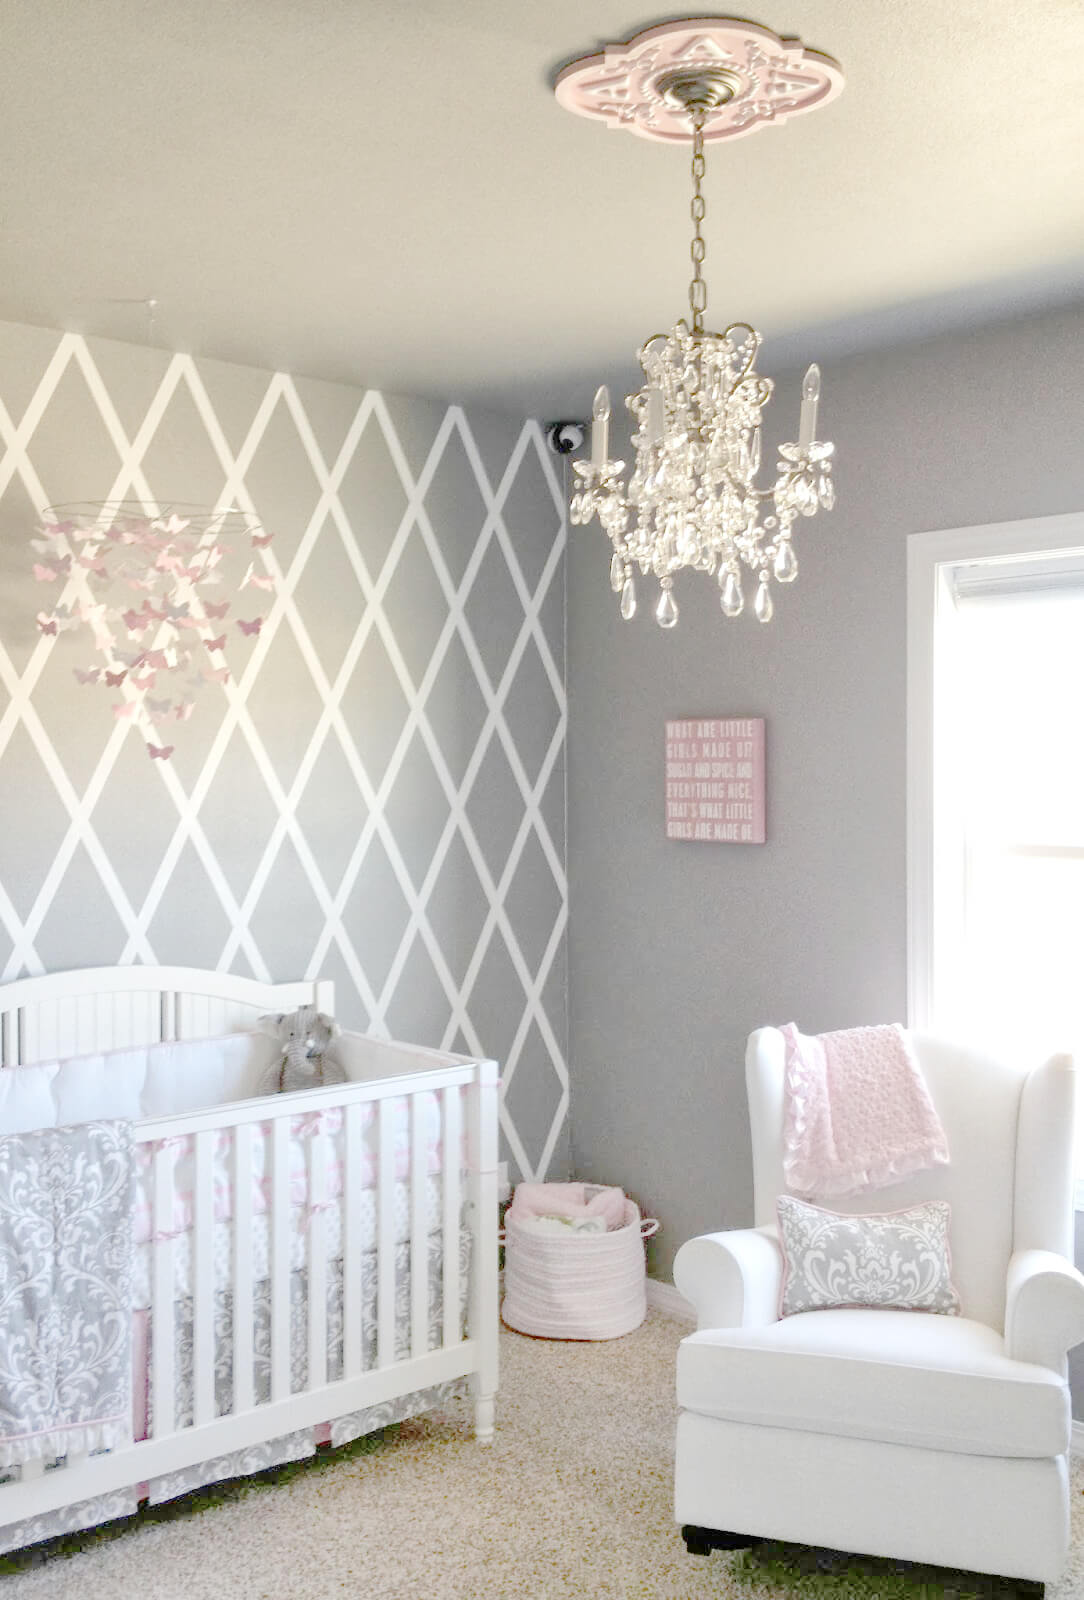 Add a Pretty Chandelier for Nursery Chic